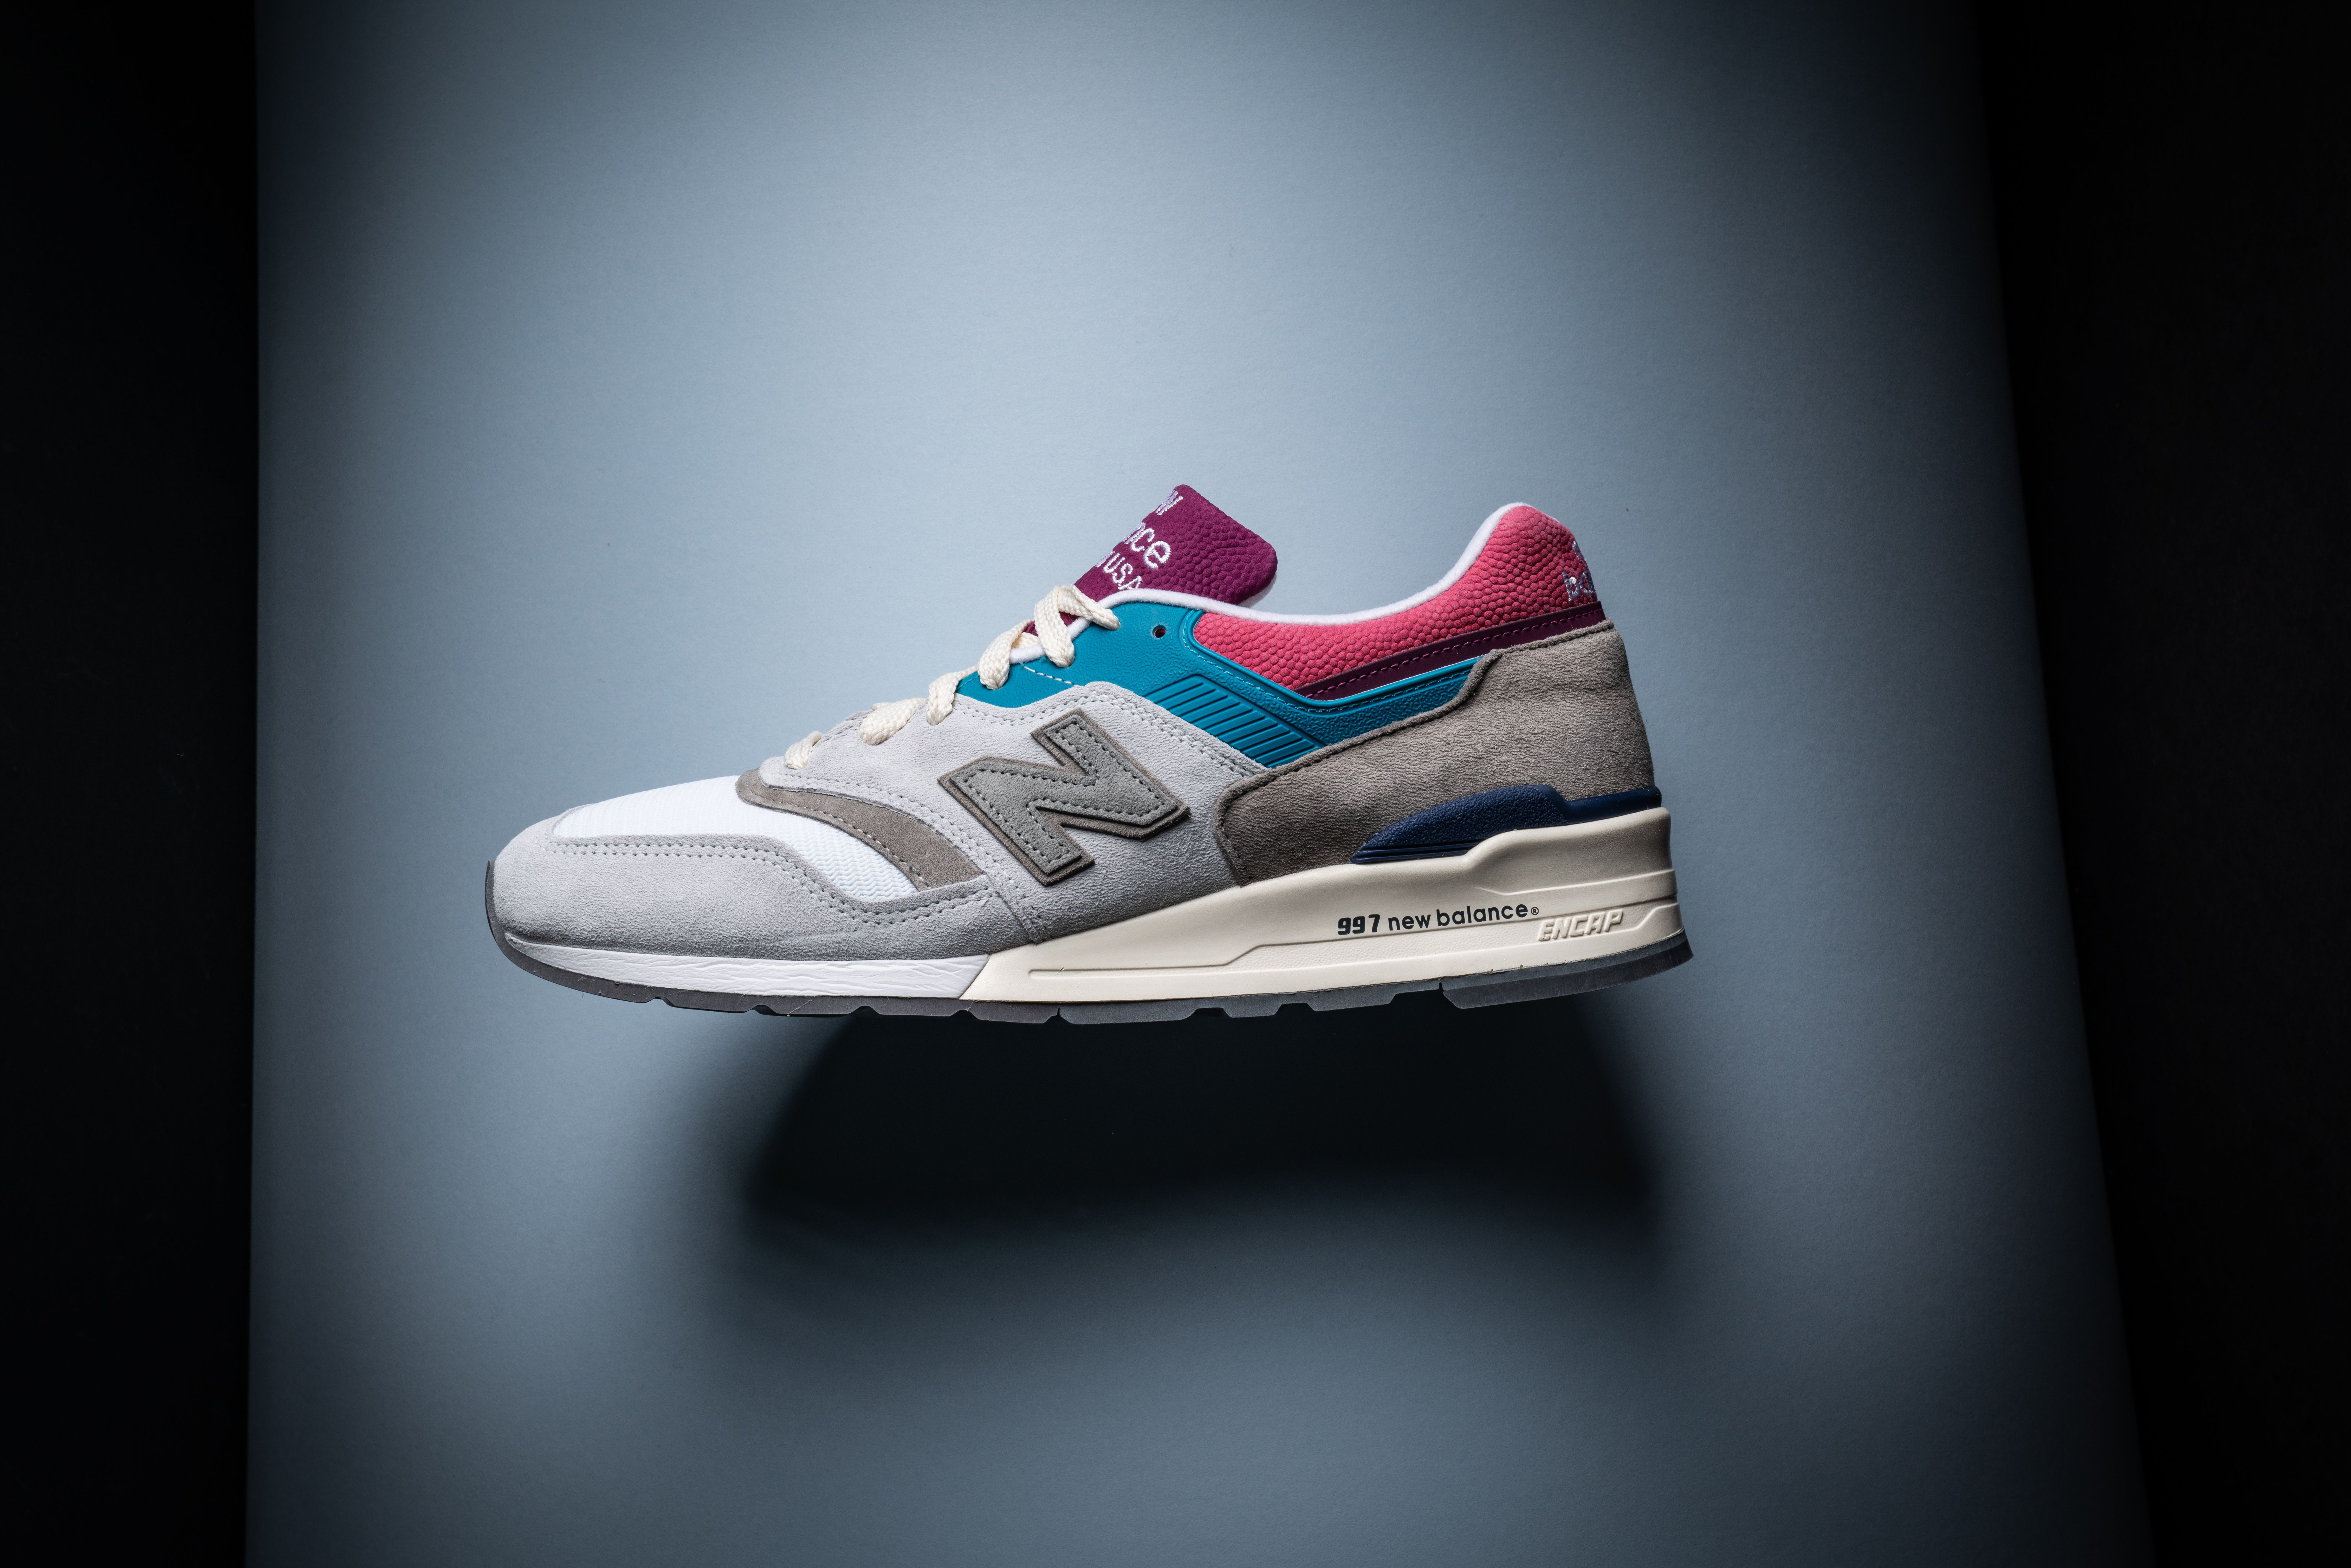 3bb9a4821b339 Aimé Leon Dore paired with New Balance this spring for two colorways of the  997,